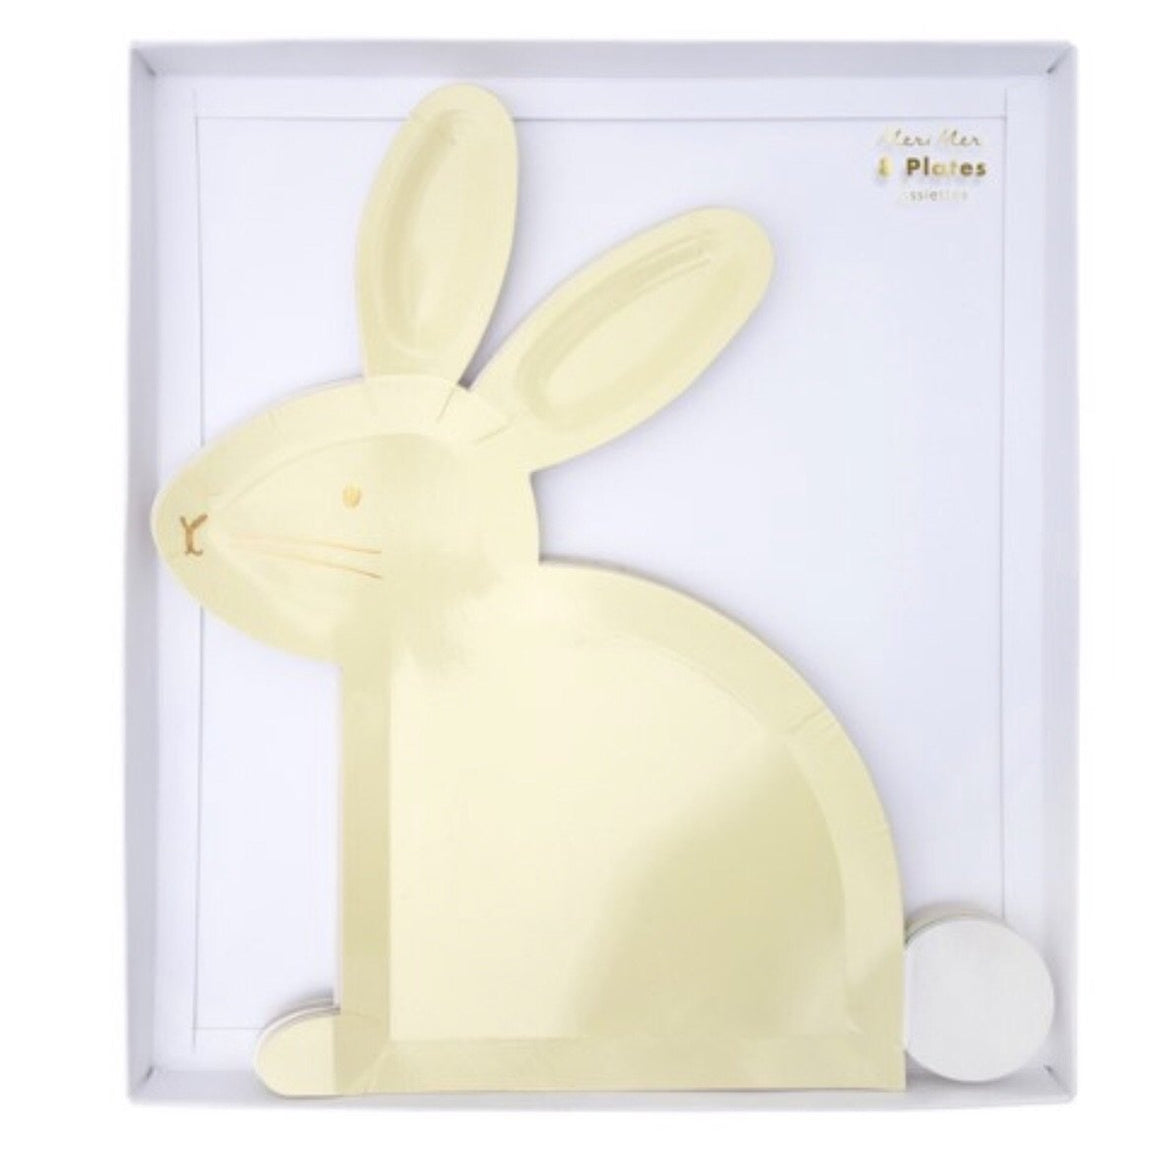 PLATES - LARGE BUNNY